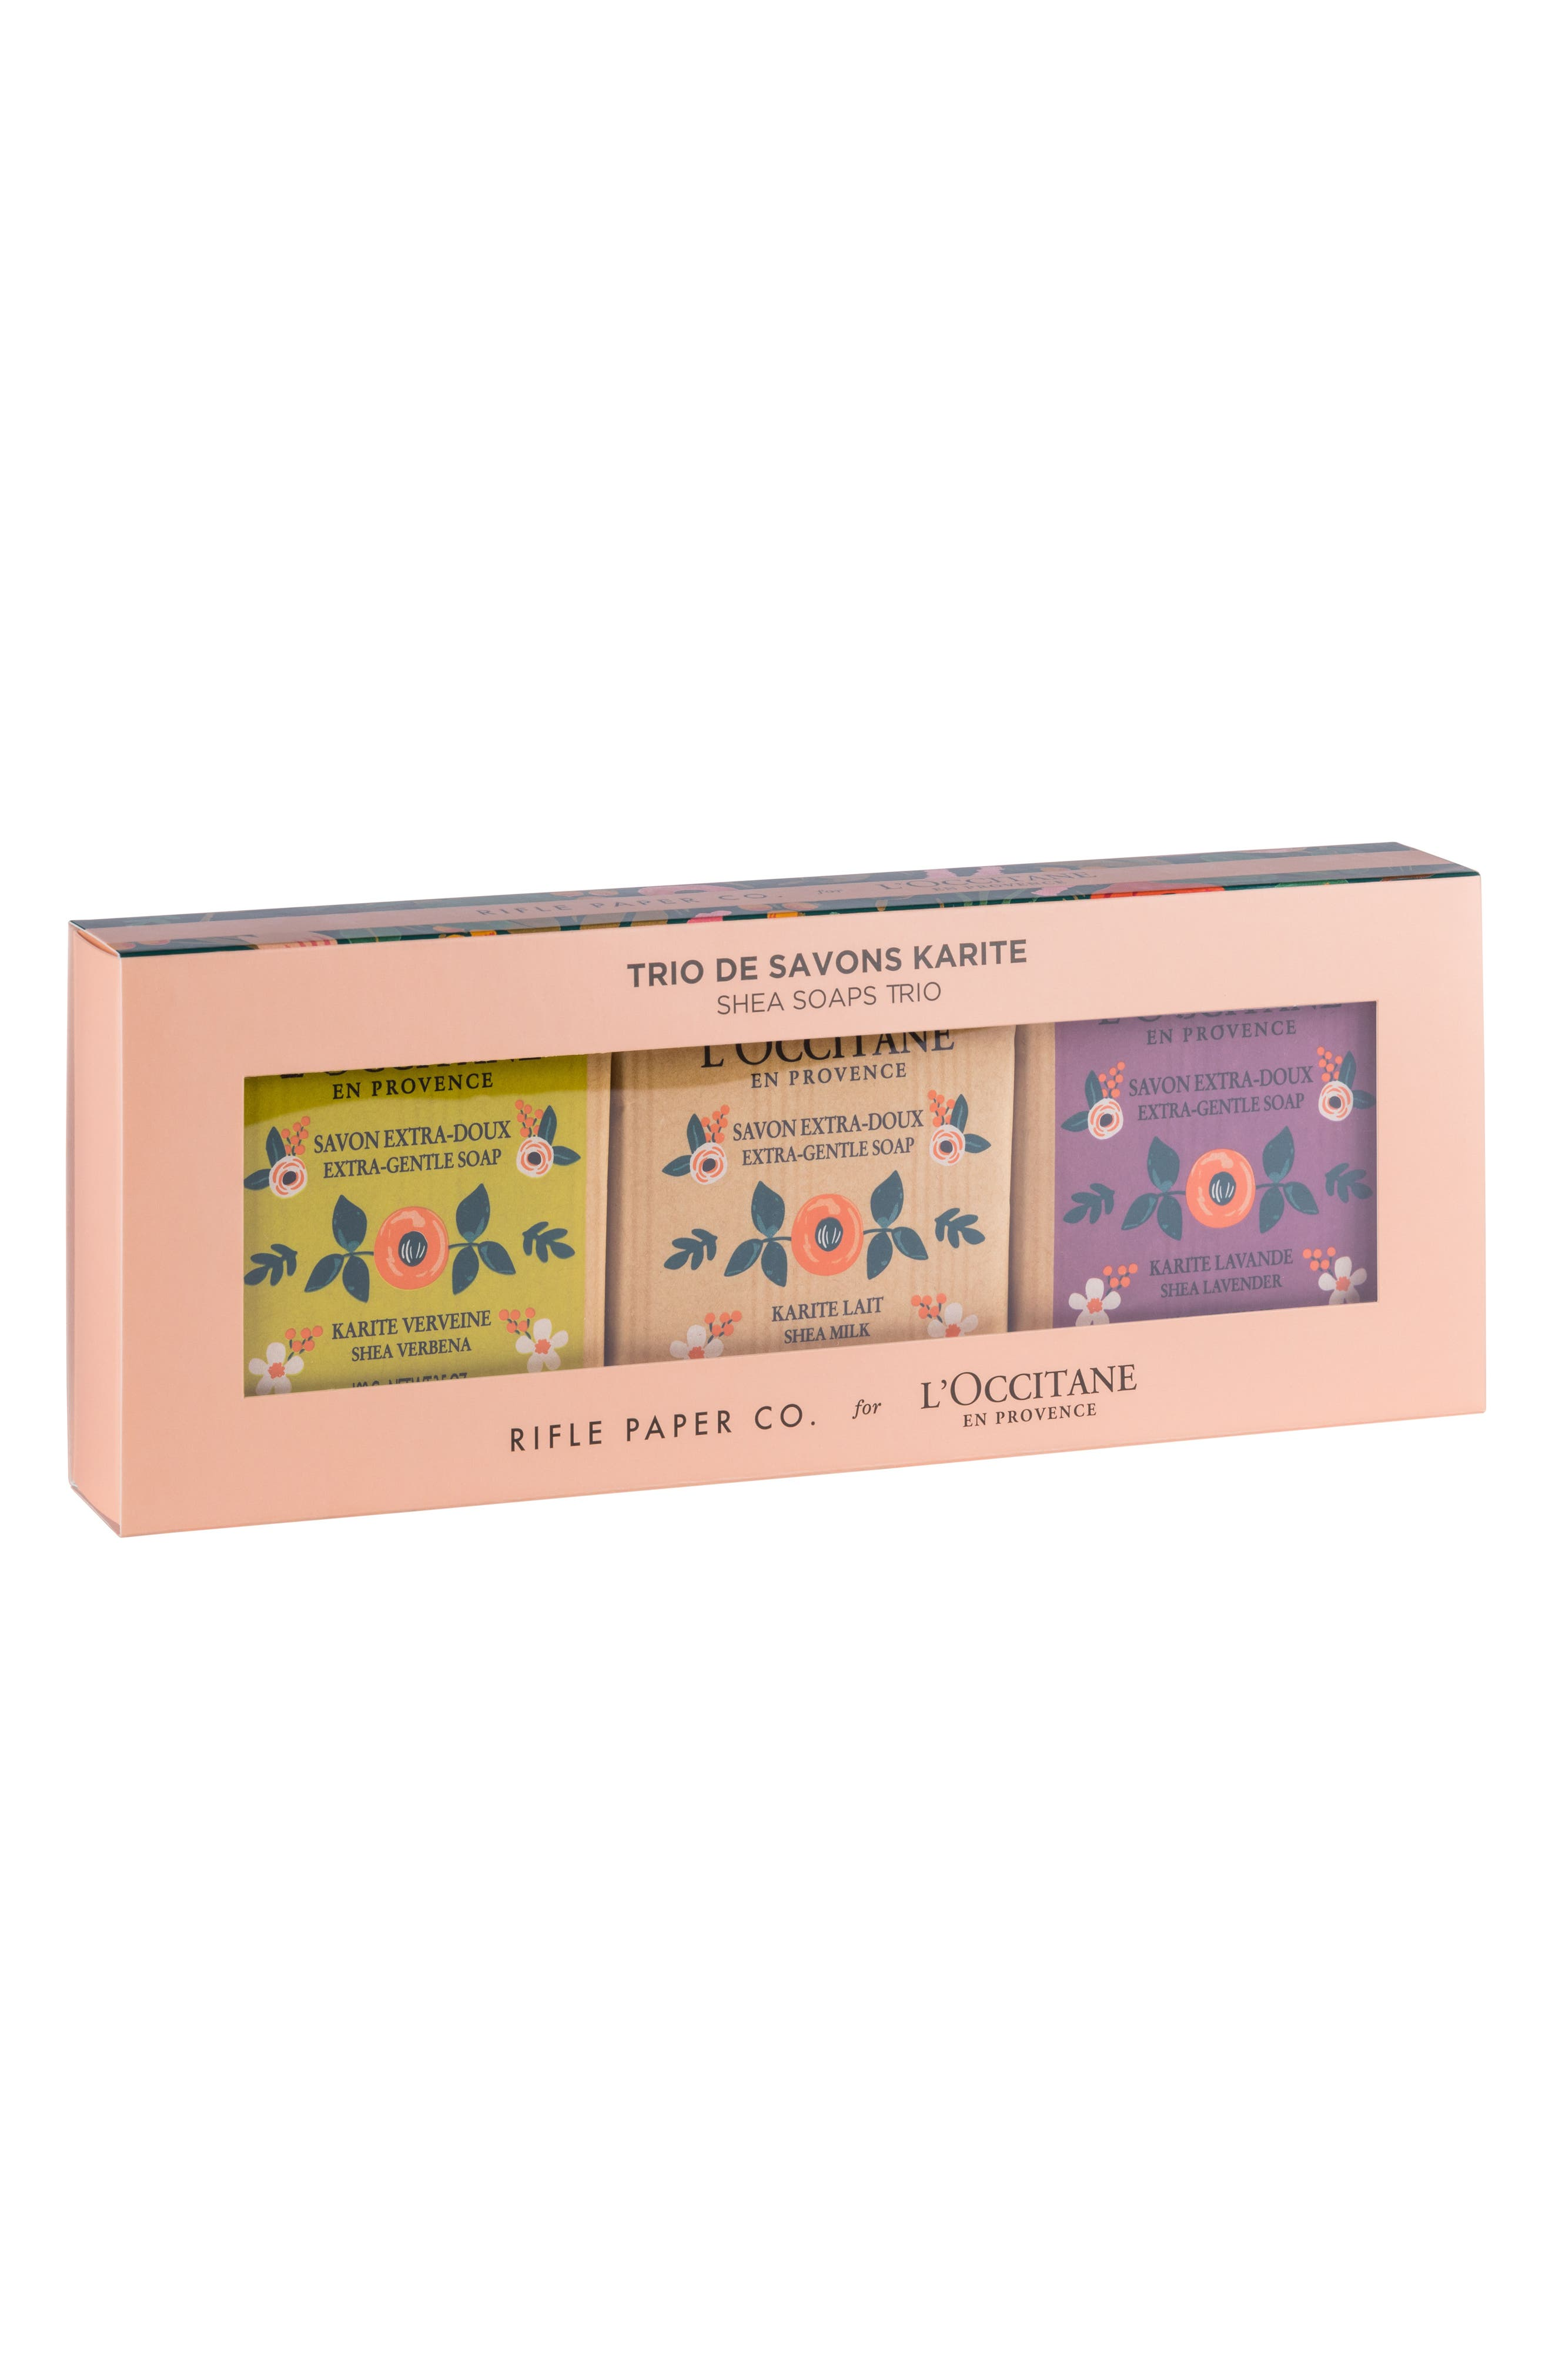 L'Occitane Rifle Paper Co. Shea Soap Trio